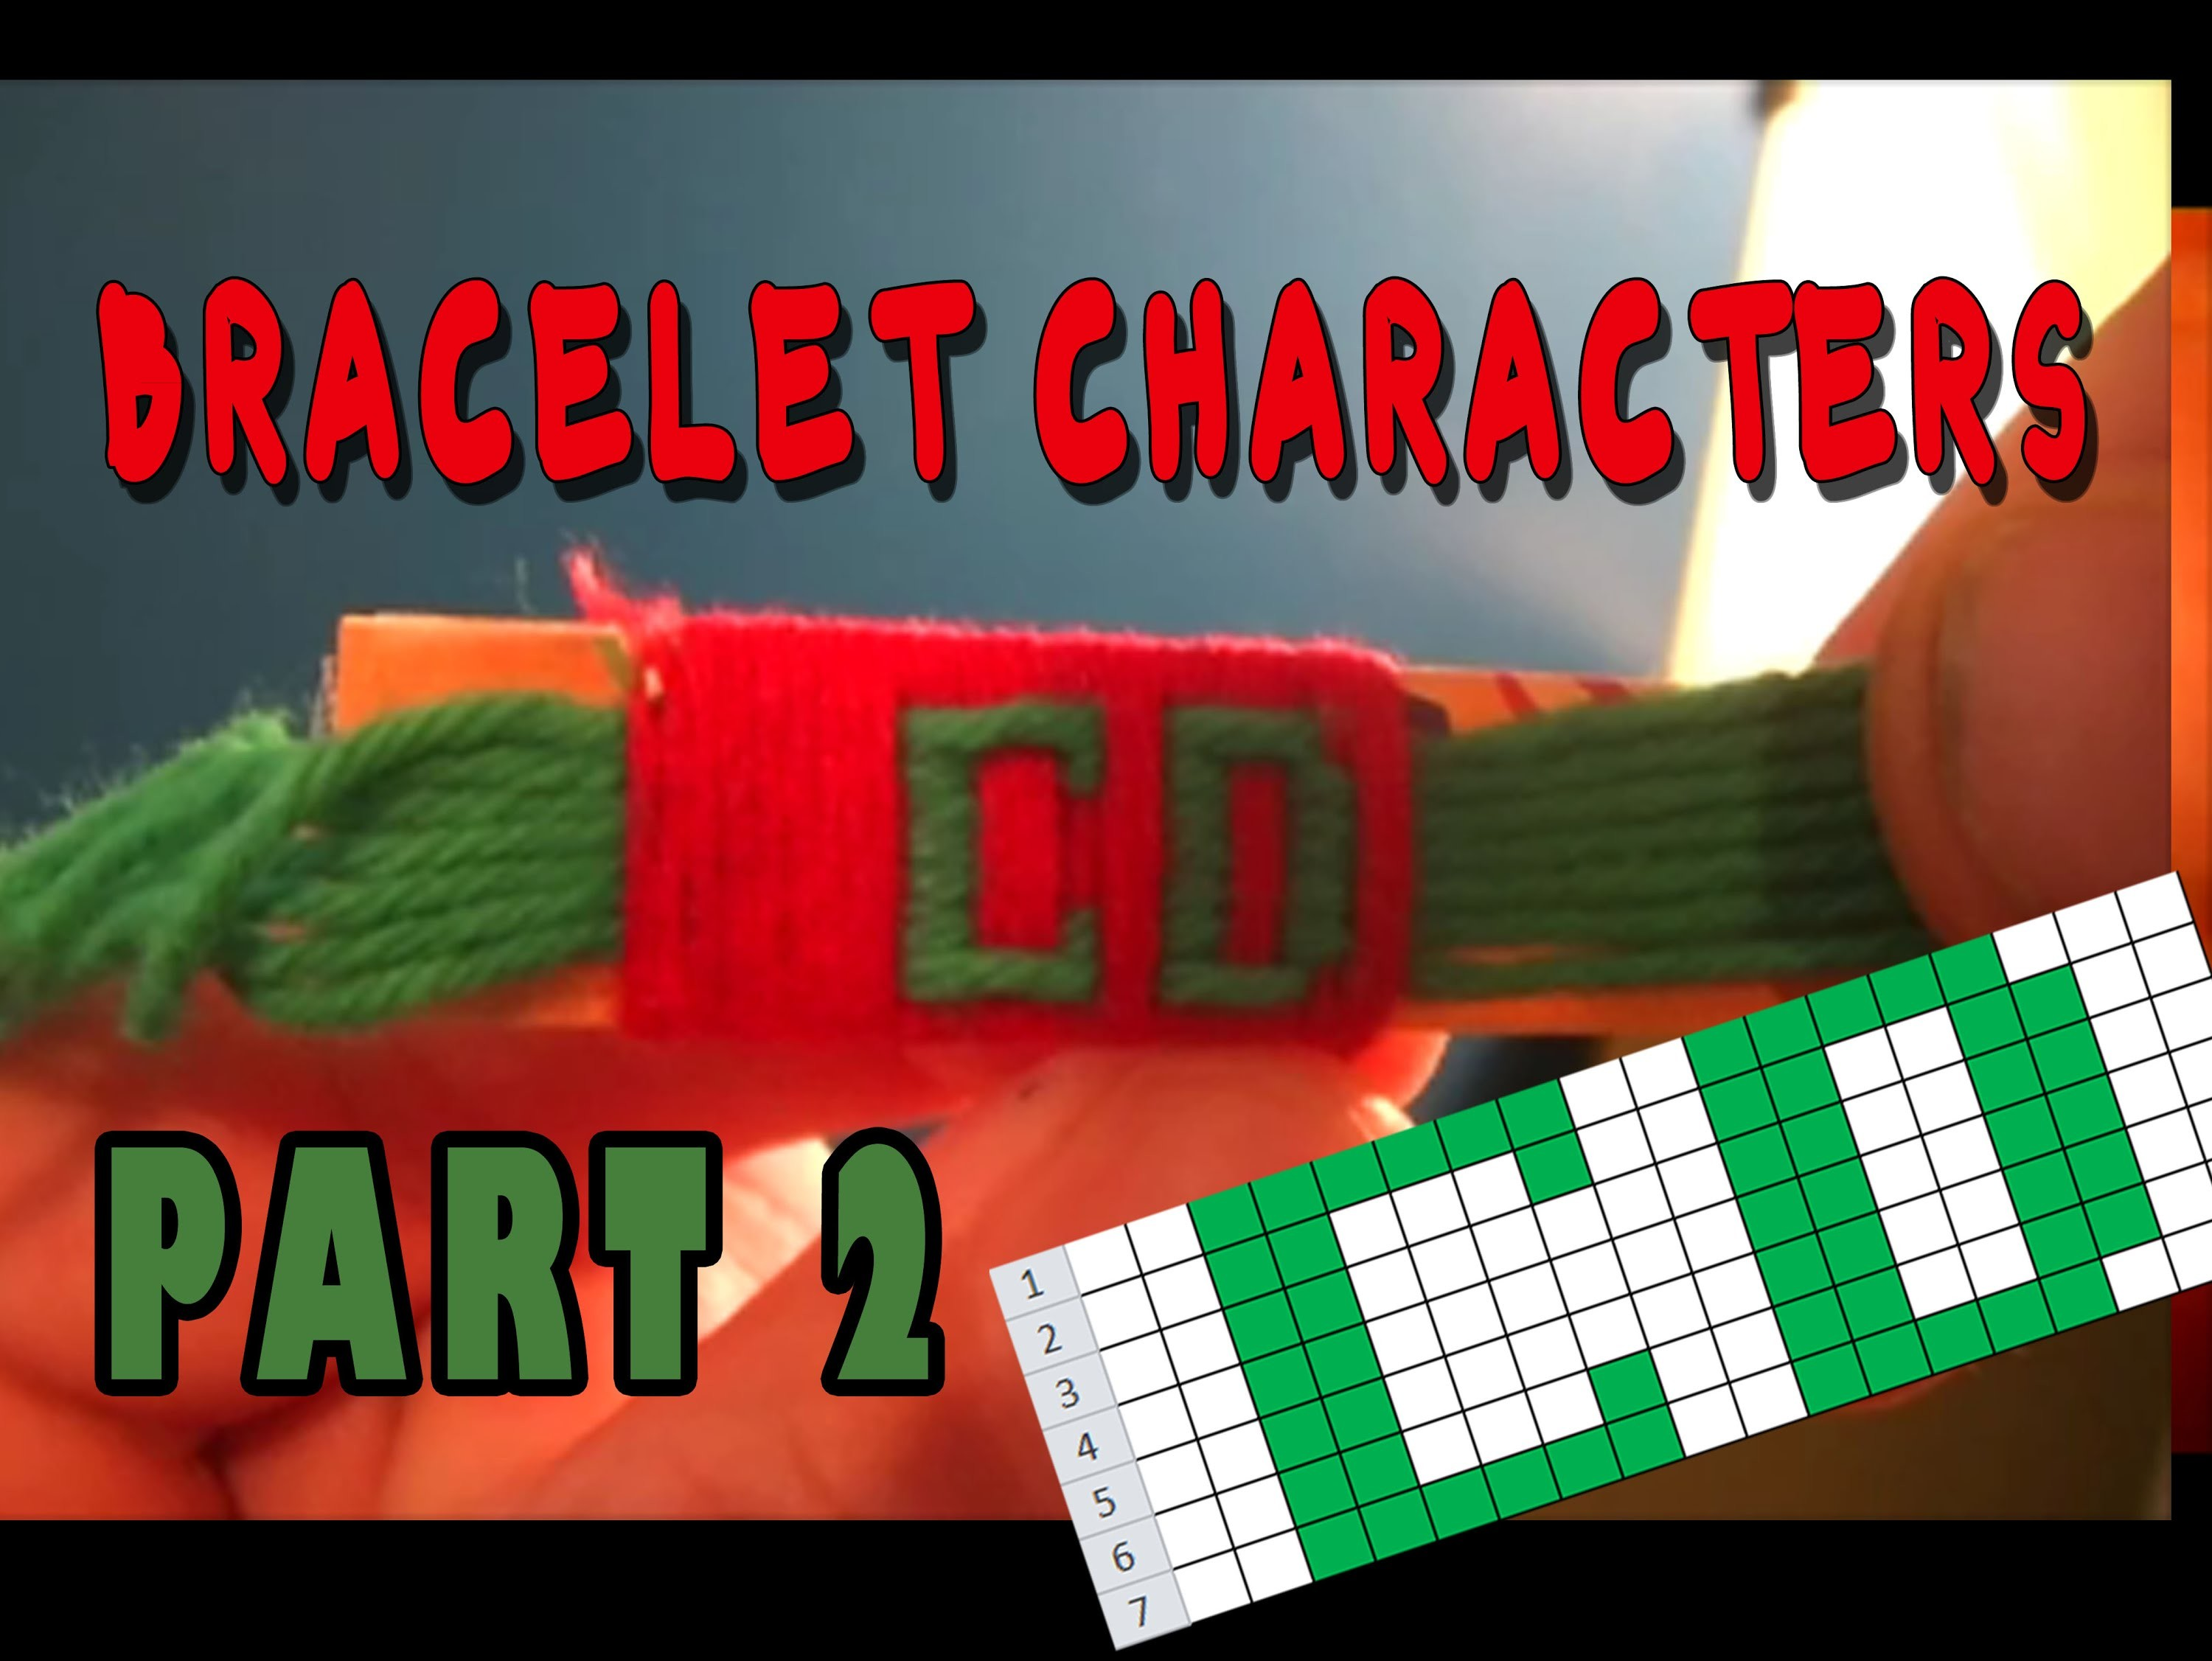 All Cotton Yarn Bracelet Characters Part 2: C & D